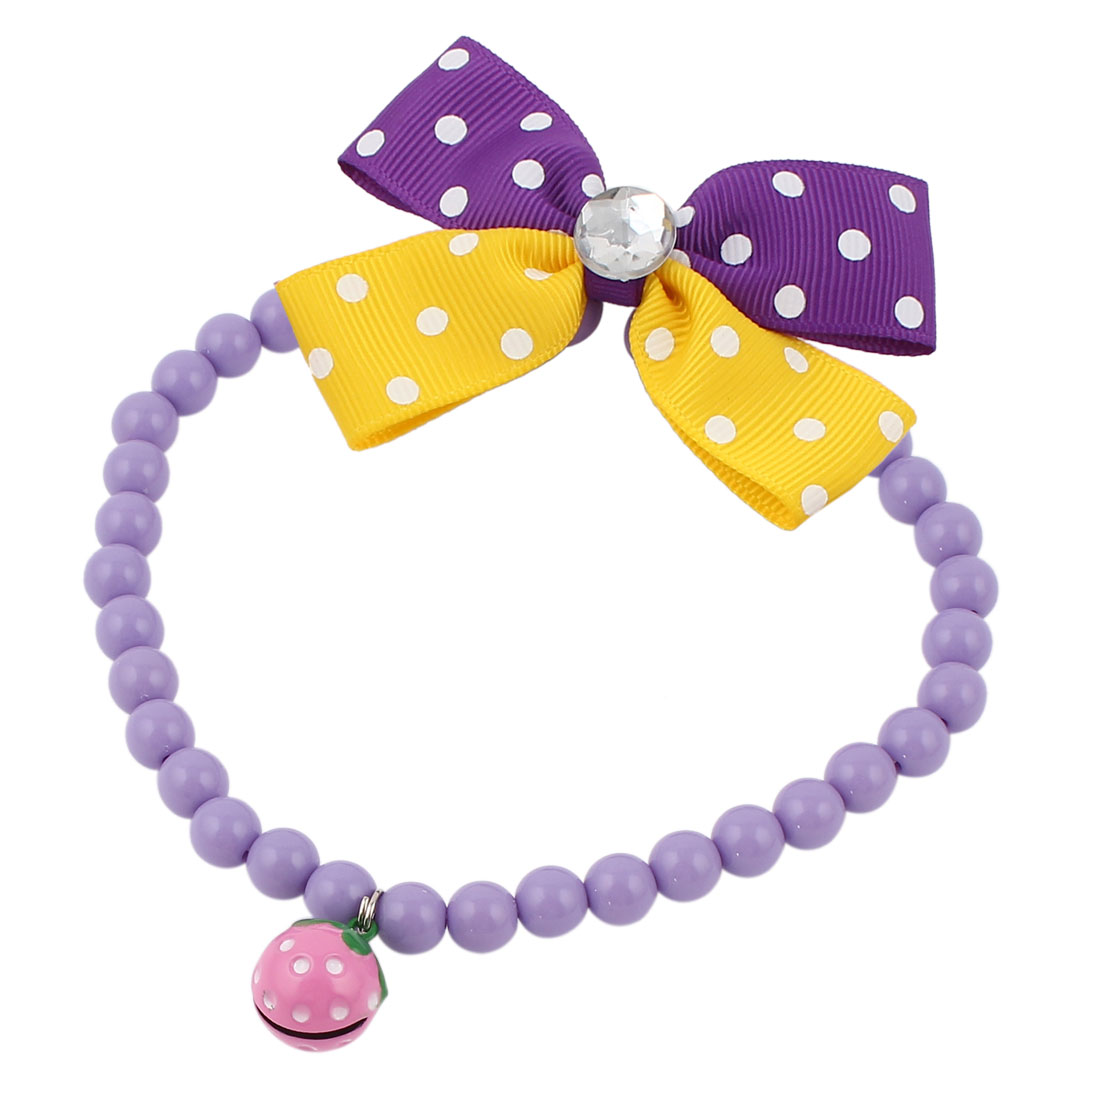 Metal Bell Pendant Bowtie Accent Pet Dog Plastic Beads Collar Necklace Purple Yellow S